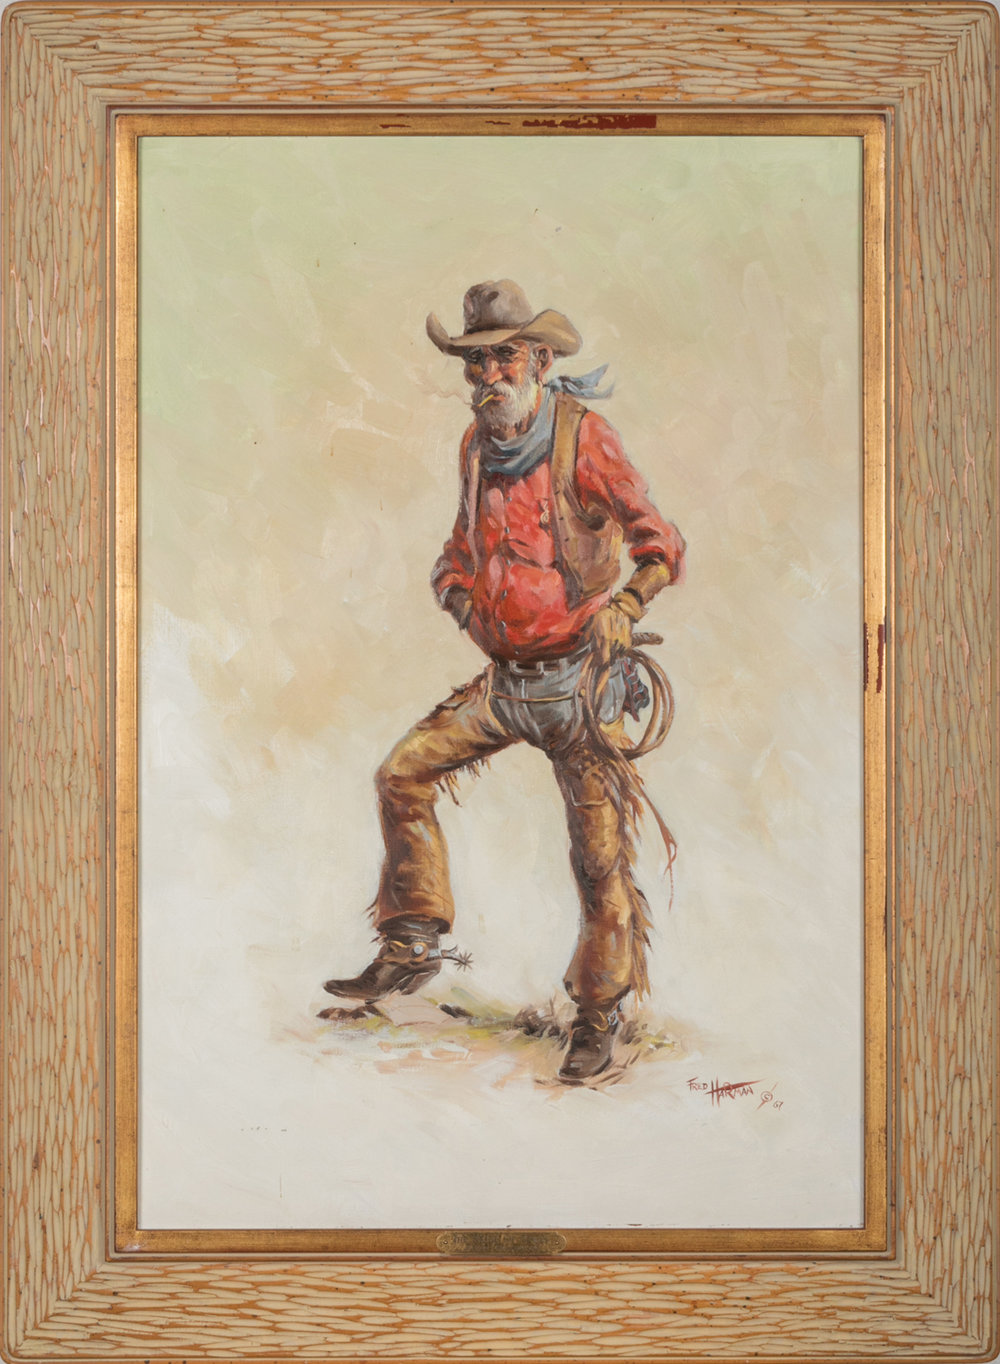 "Lot 169, Fred Harman, The Pride of Texas, Oil on canvas, 24"" x 36"".  Literature: The Cowboy in Art, by Ed Ainsworth, pictured on page 132. Book included. The Great West in Paintings,  by Fred Harman, 1969, pictured on page 140. Fred Harman. Provenance: From the Estate of Snuff Garrett. Sold $2,360"